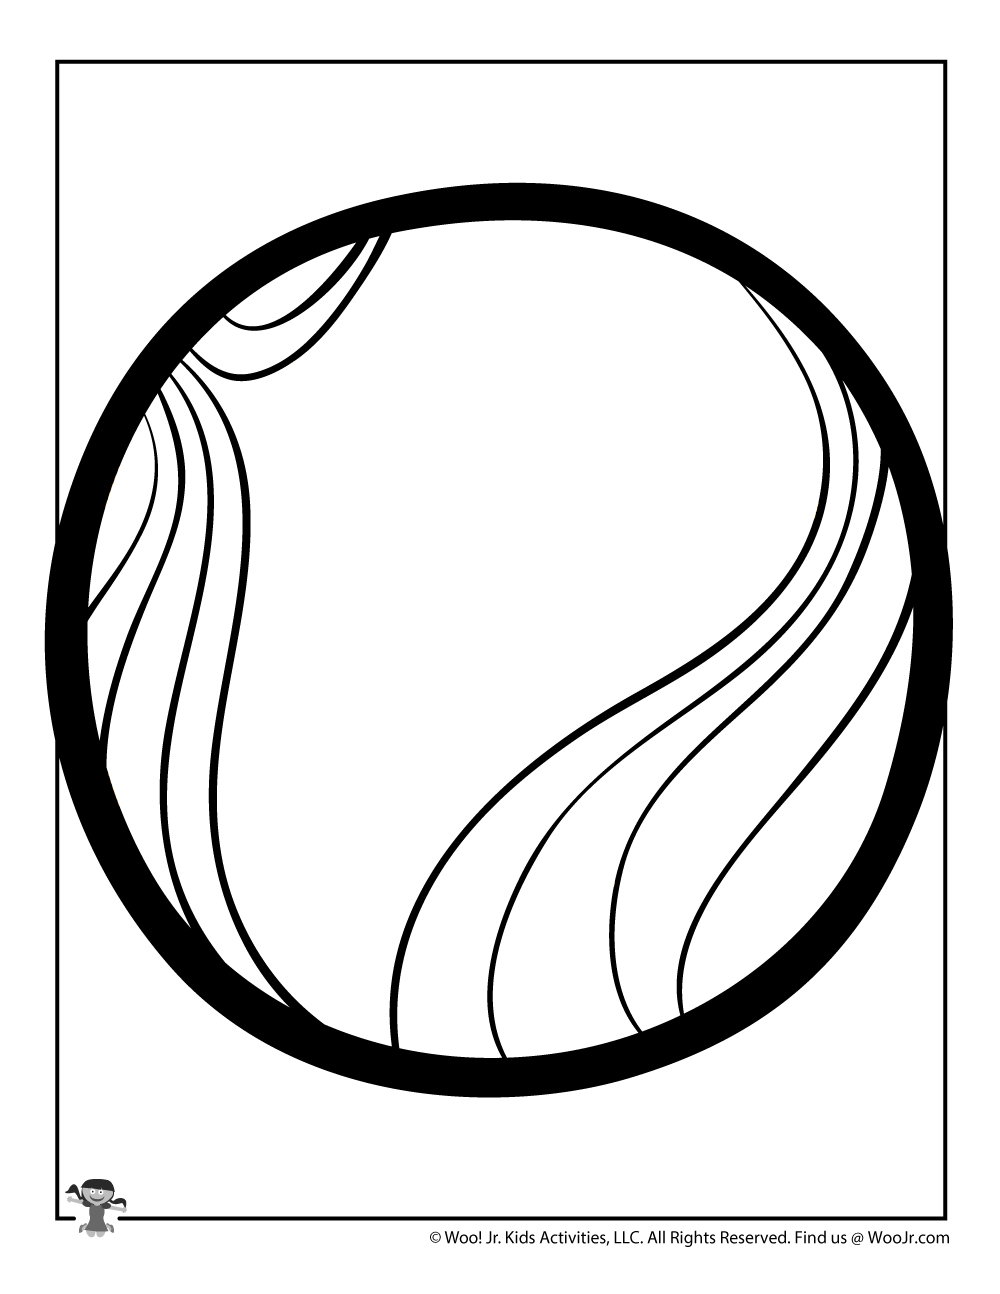 Venus Planet Coloring Page | Woo! Jr. Kids Activities